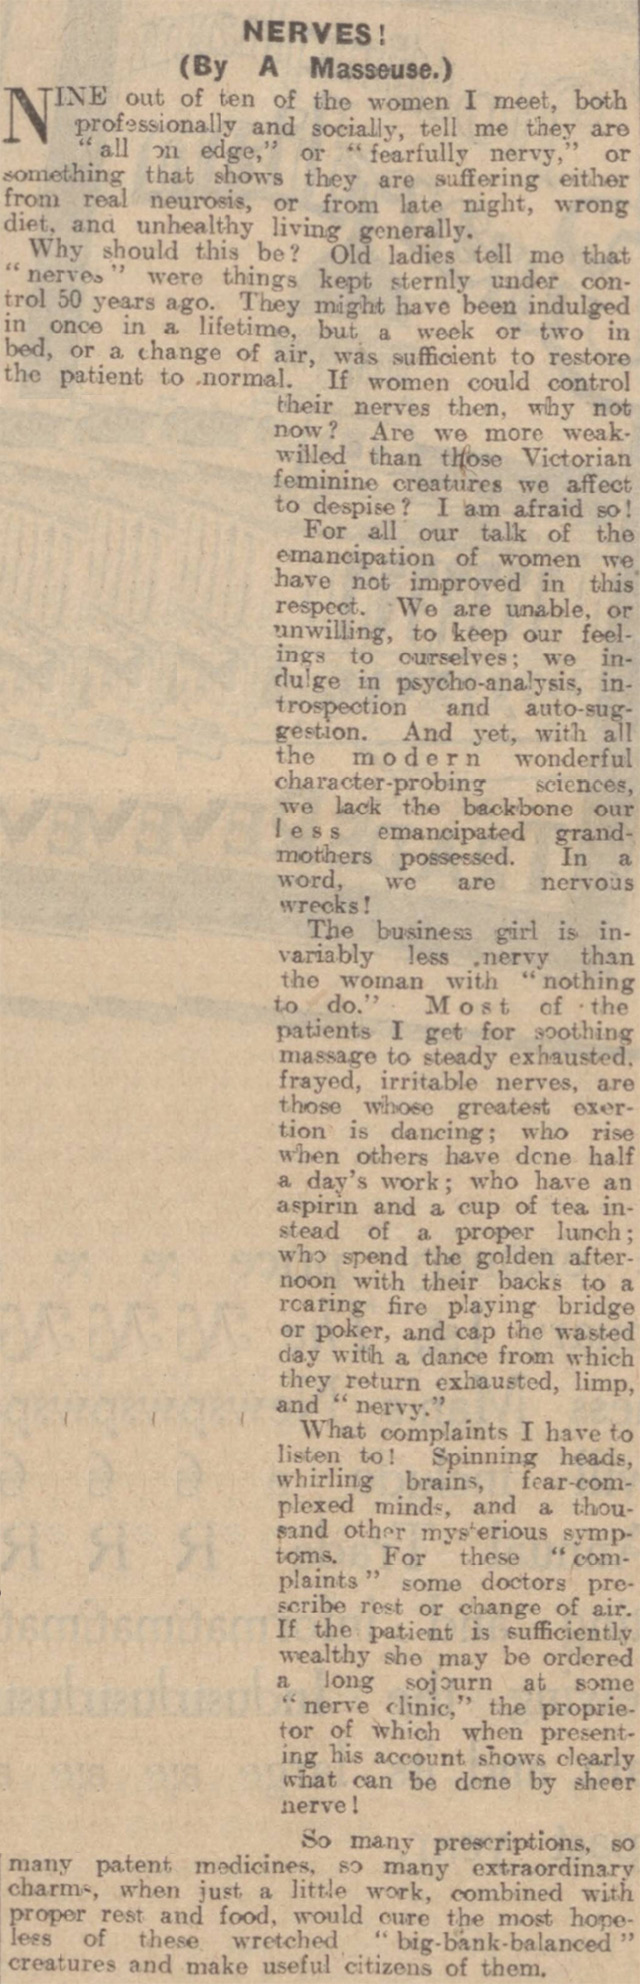 The Nottingham Evening Post's views on people's nerves after WW1